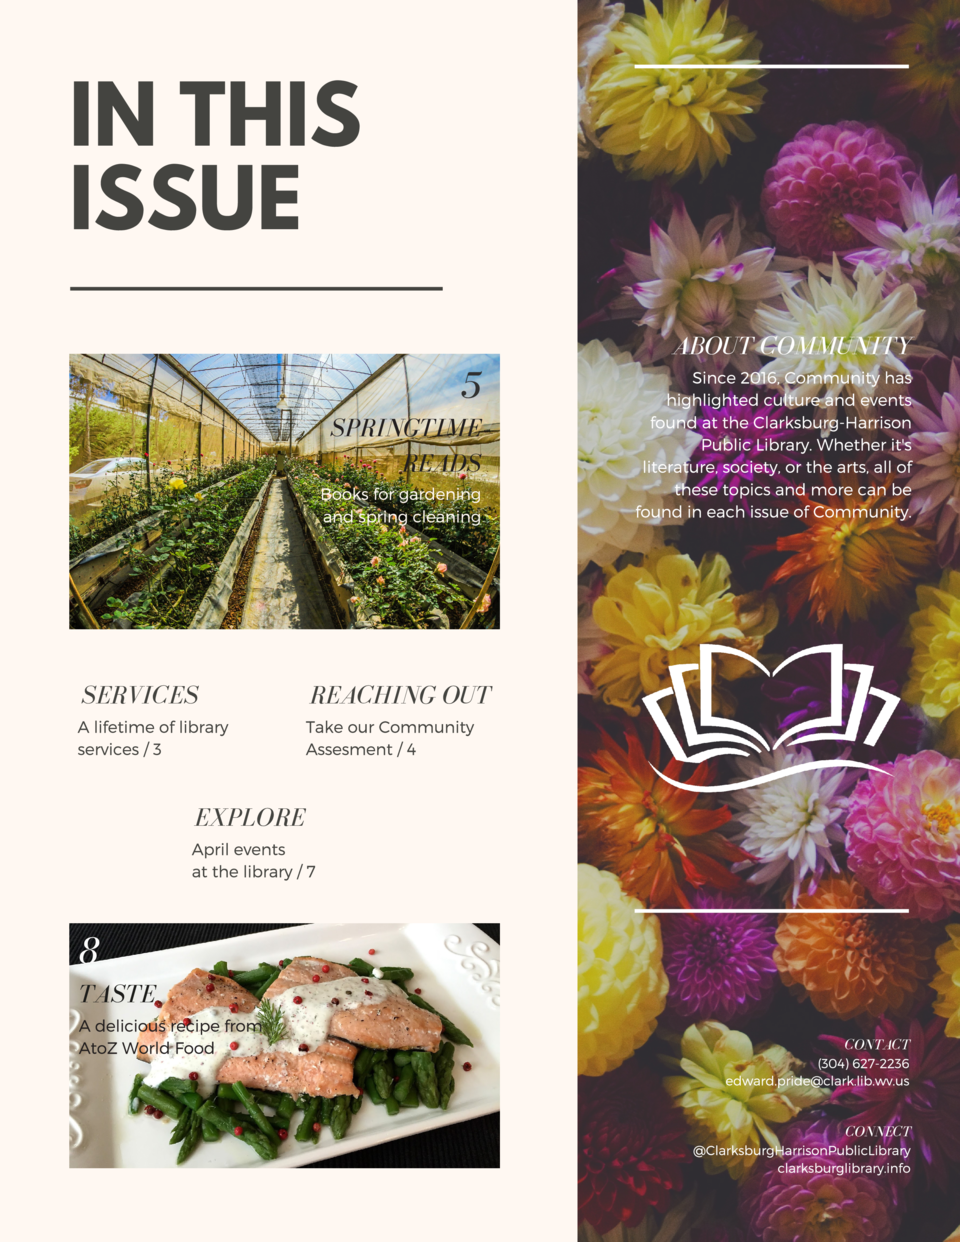 IN THIS ISSUE ABOUT COMMUNITY  5 SPRINGTIME READS Books for gardening and spring cleaning  SERVICES  REACHING OUT  A lifet...